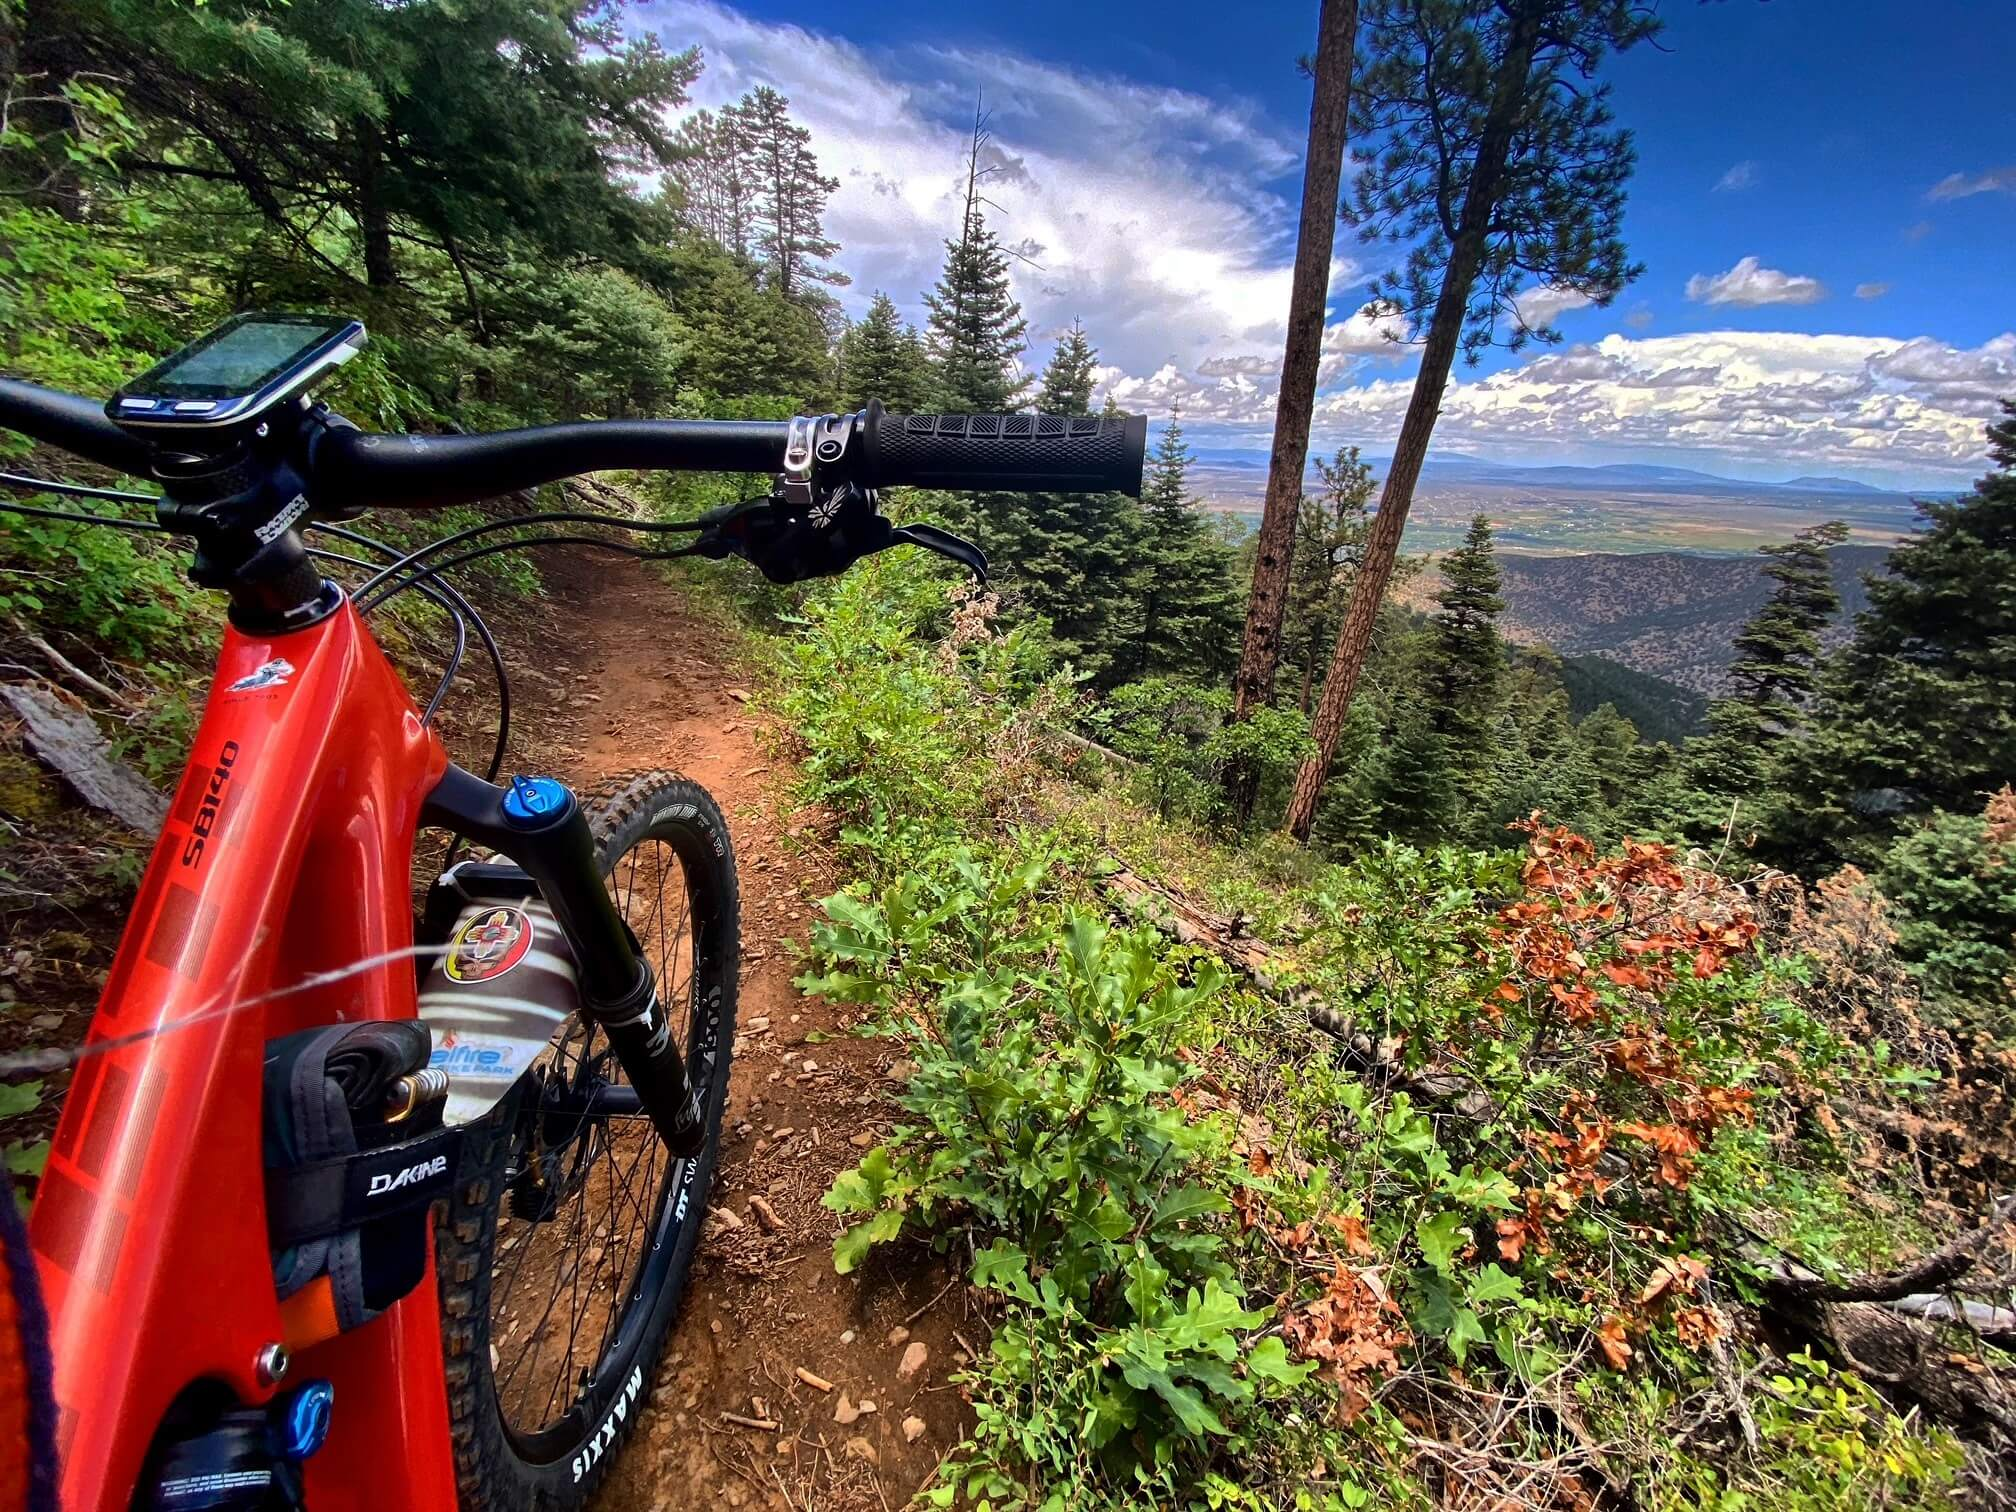 South Boundary mtb trail in New Mexico